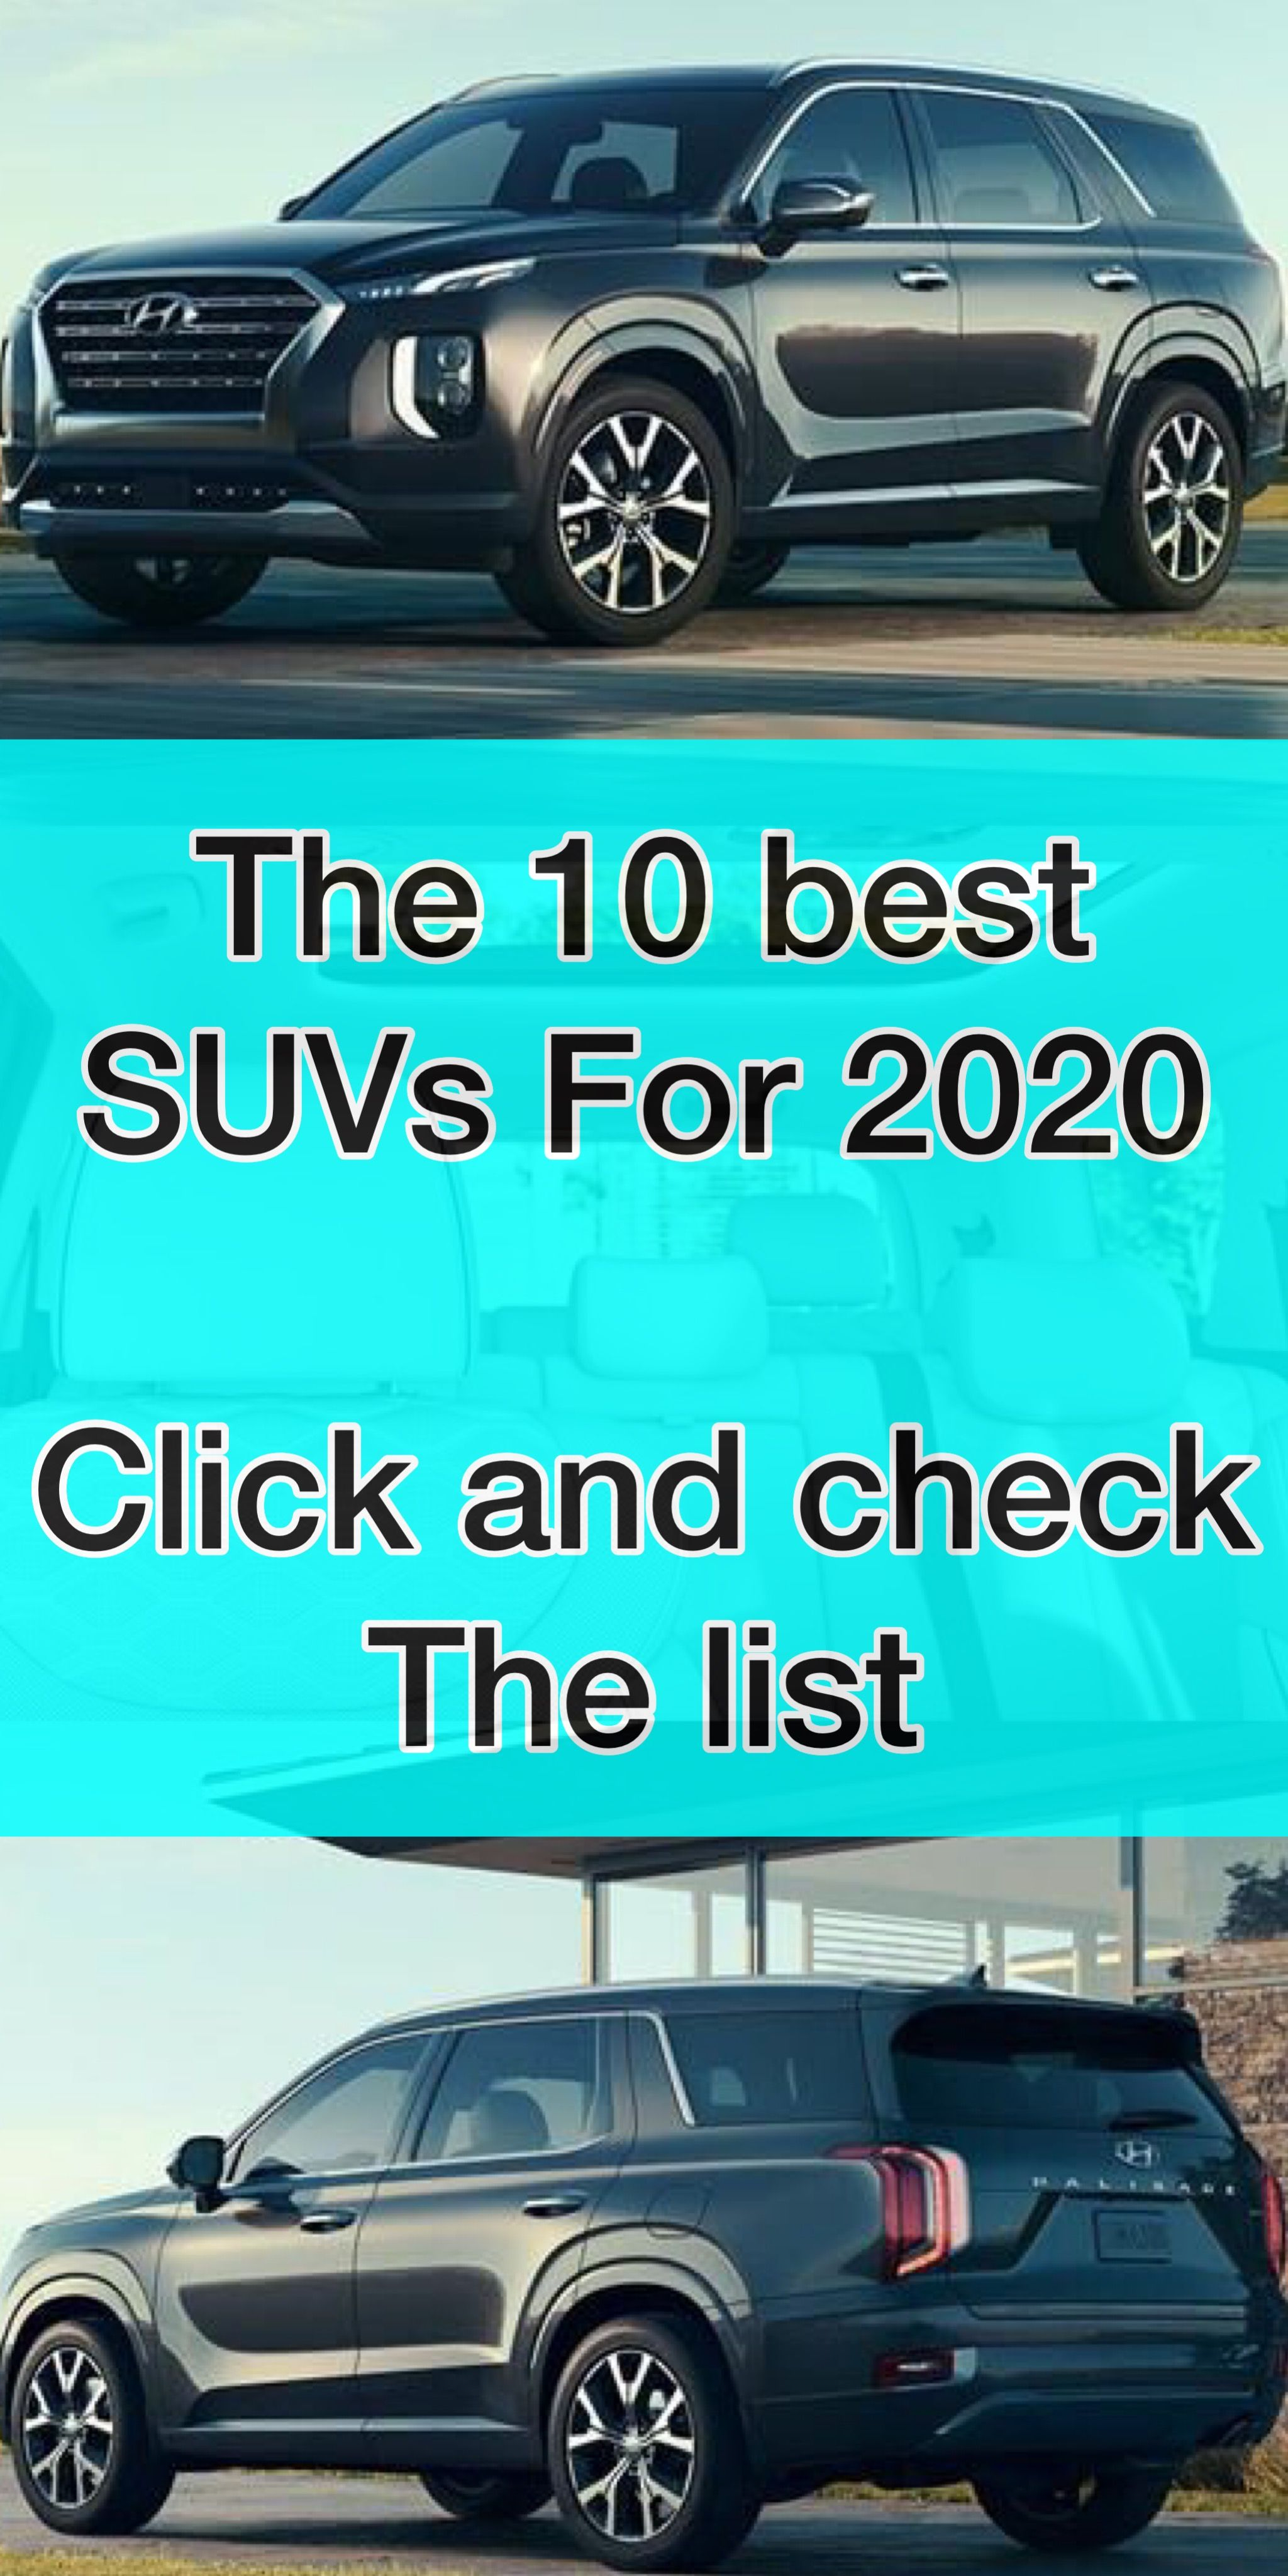 The 10 Safest Suvs You Can Buy It Now 2020 In 2020 Safest Suv